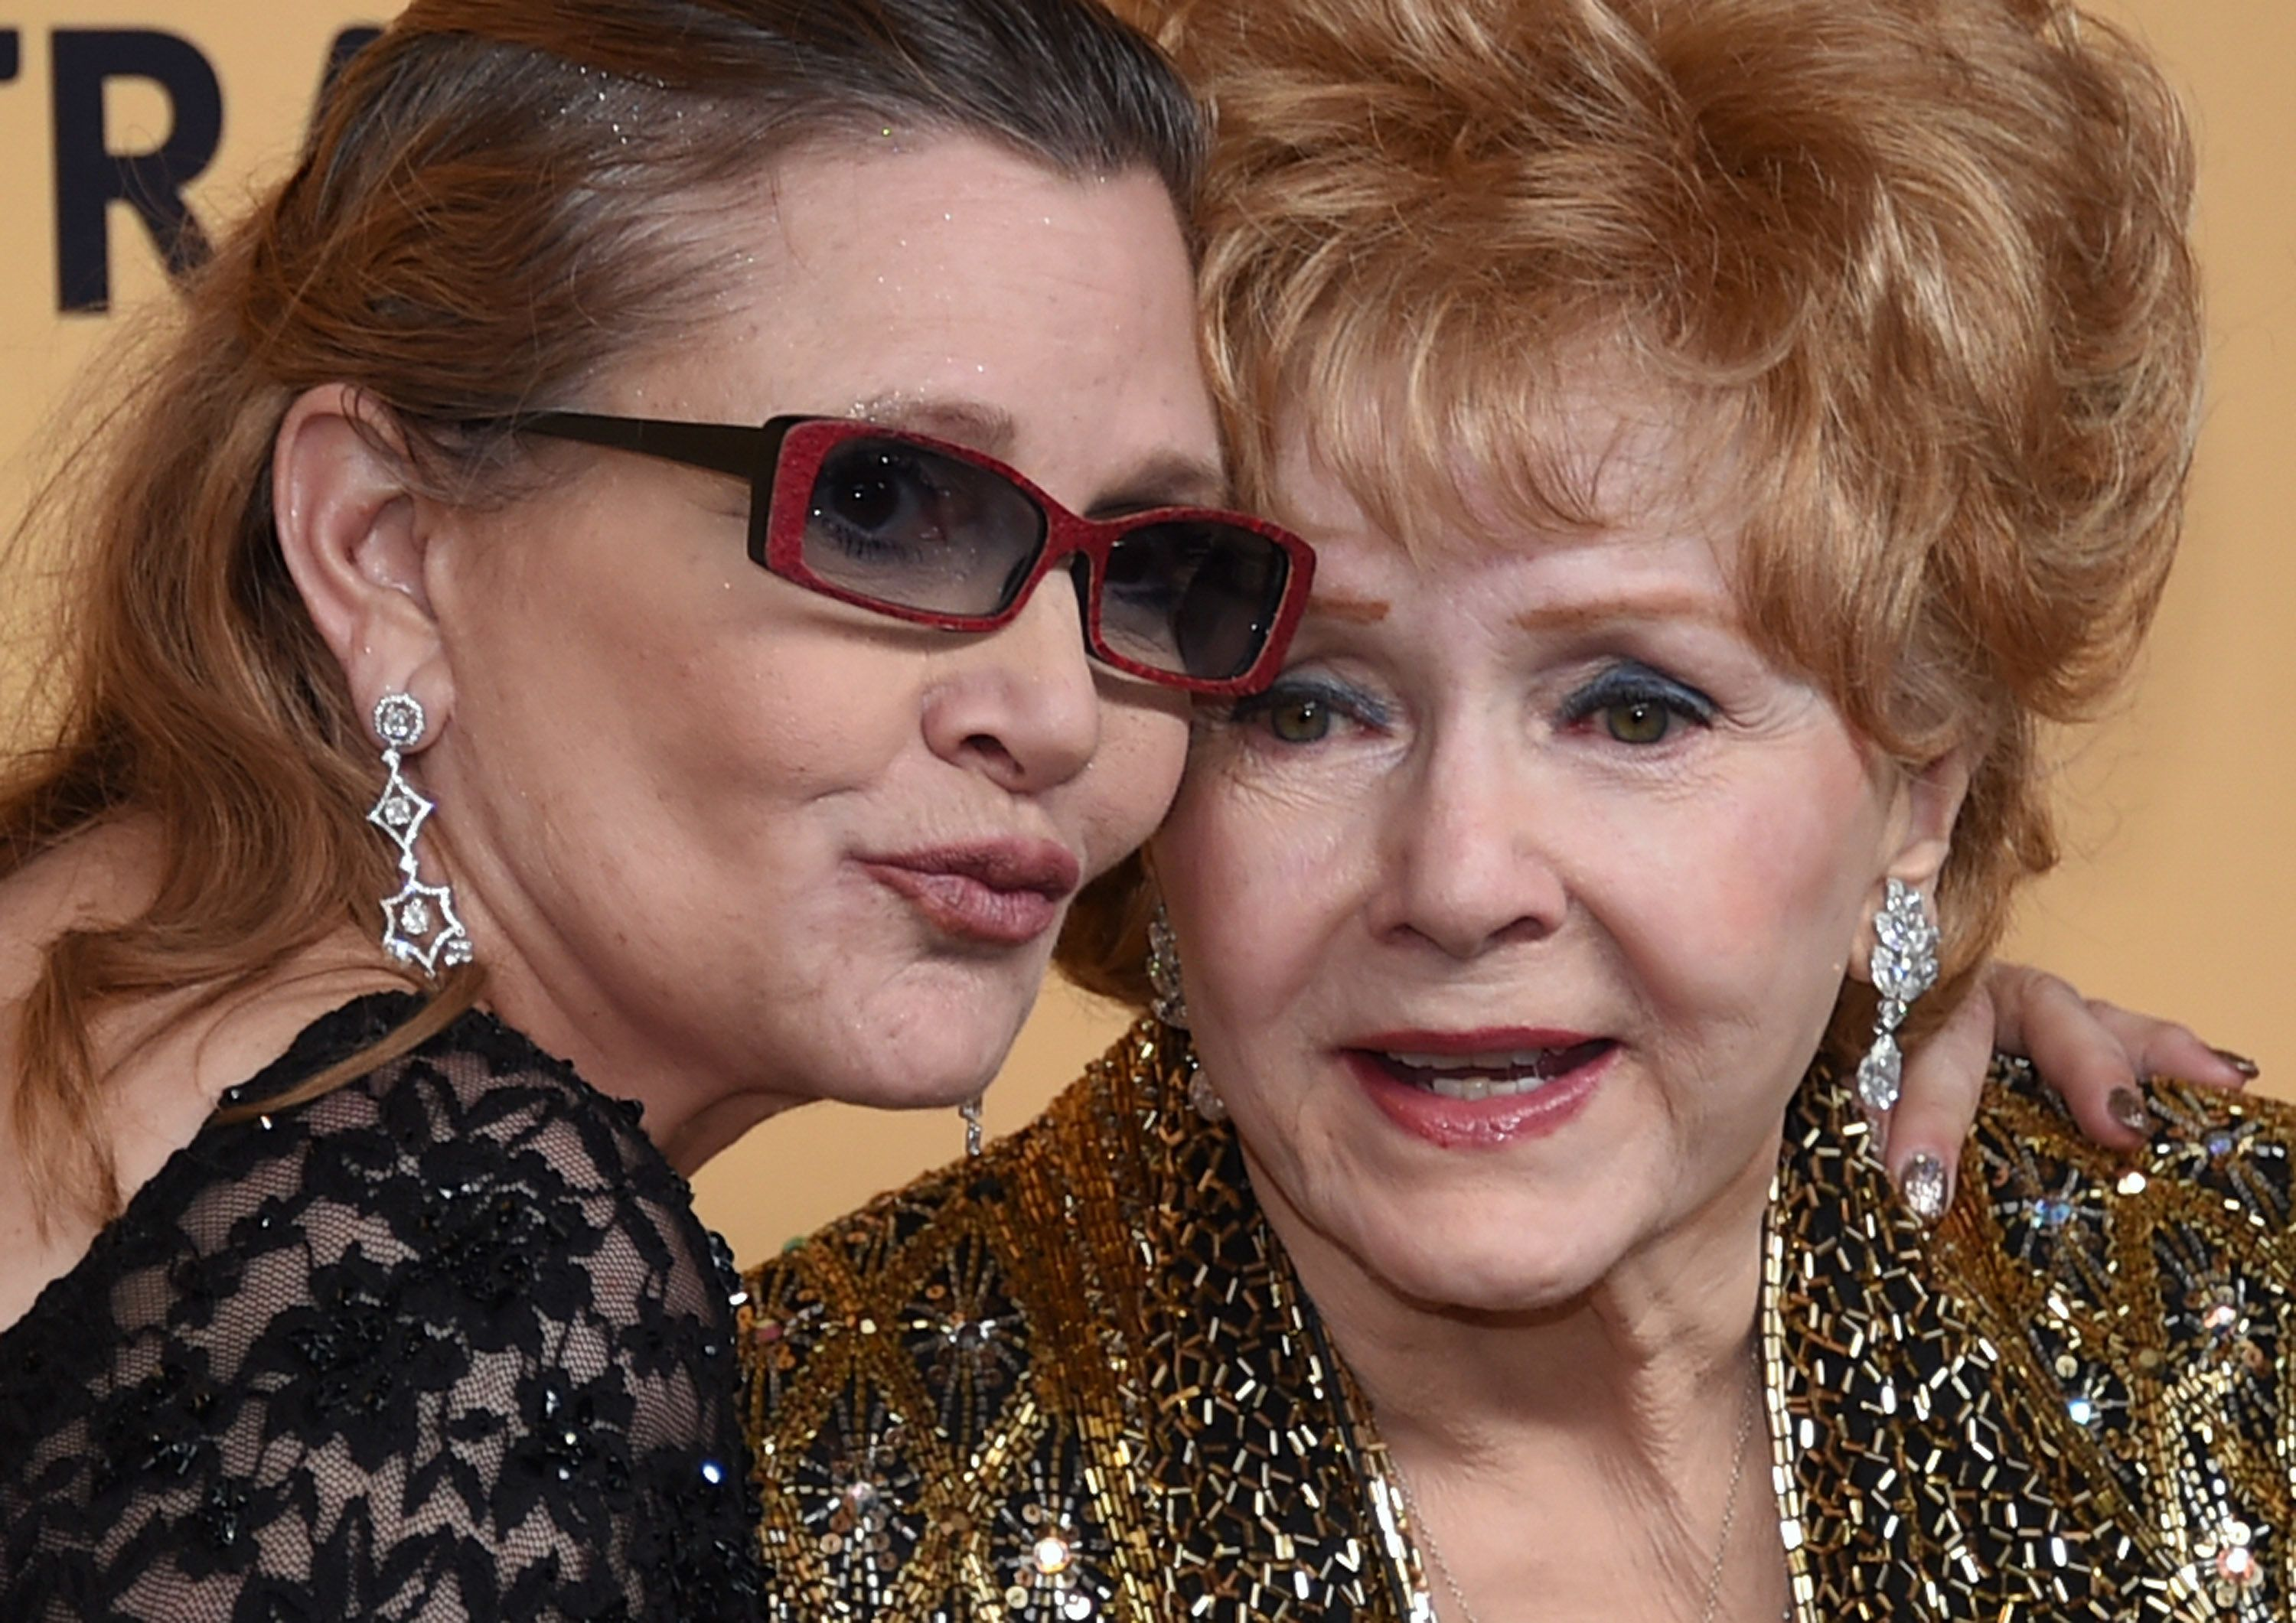 HBO To Premiere Doc About Carrie Fisher and Debbie Reynolds Within